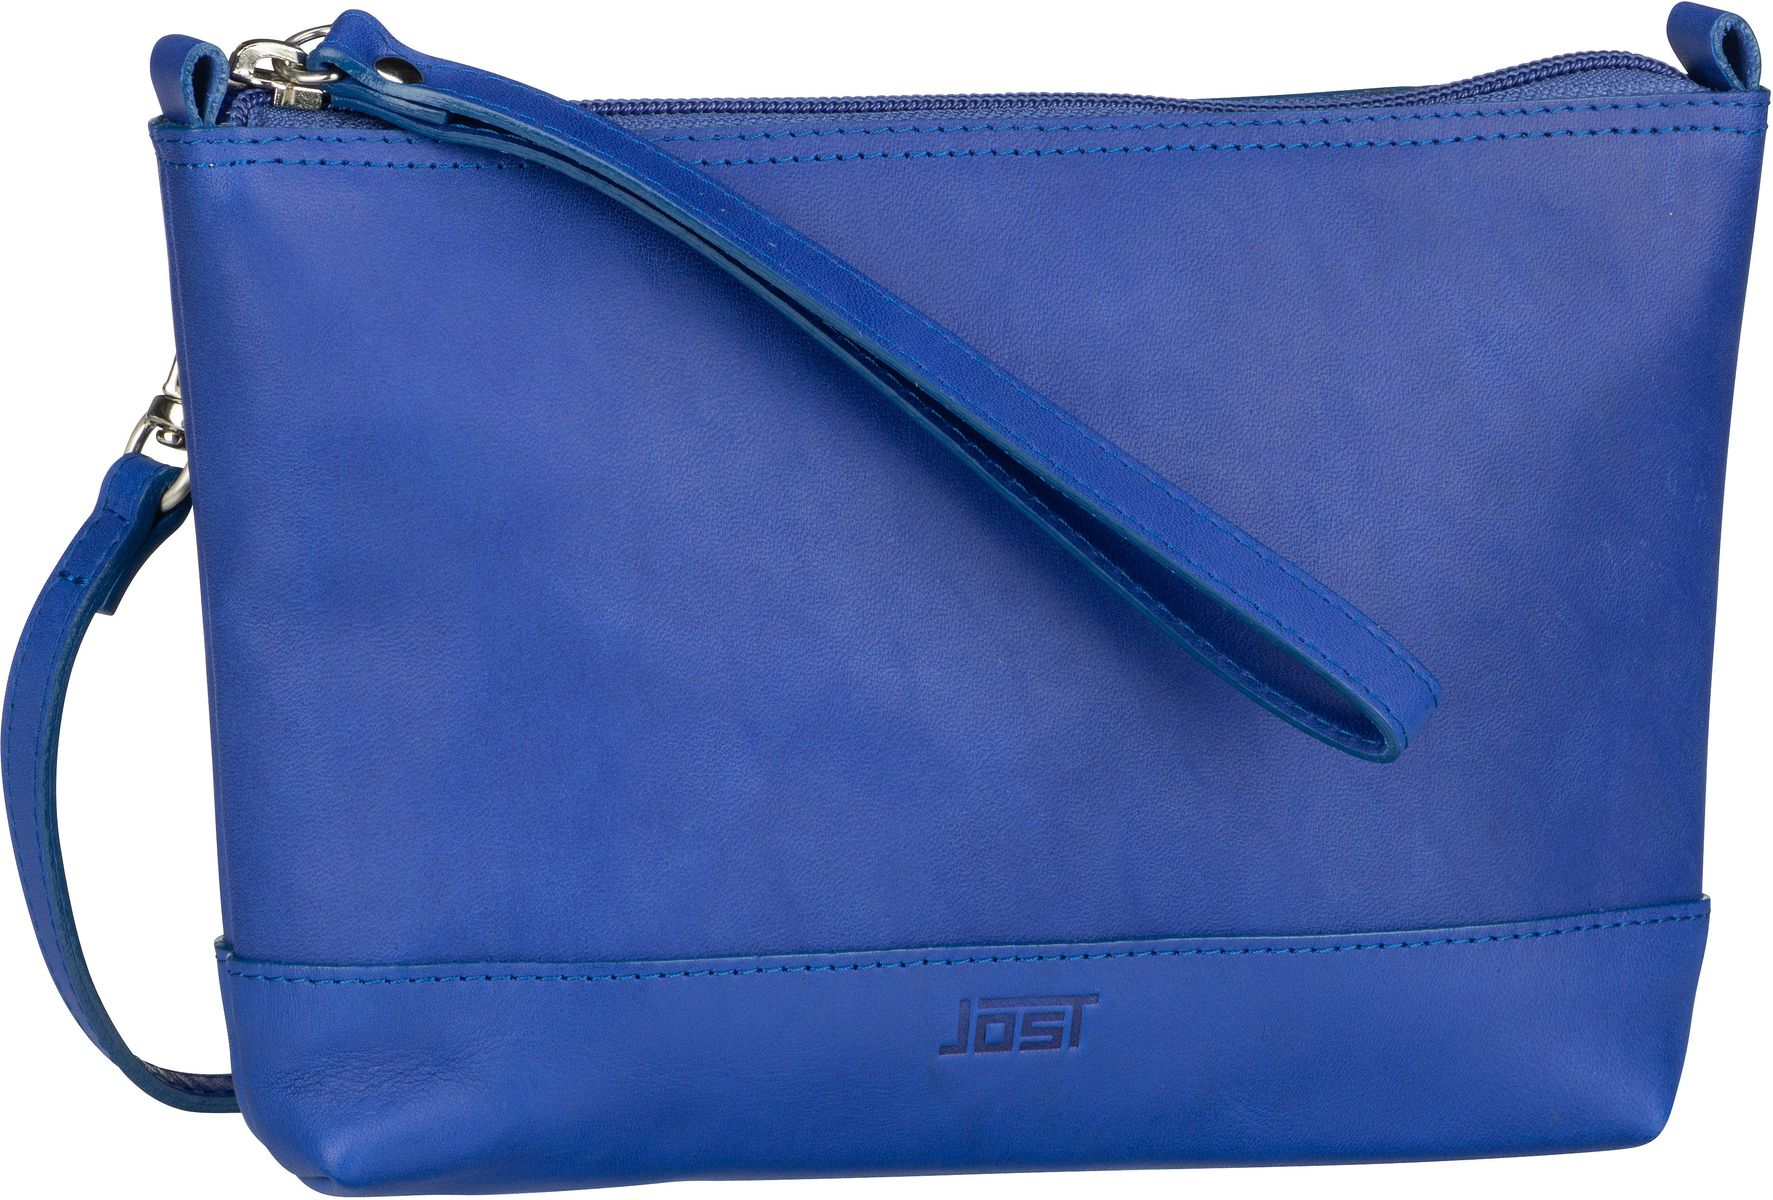 Umhängetasche Rana 1279 Belt/Shoulder Bag Royalblue